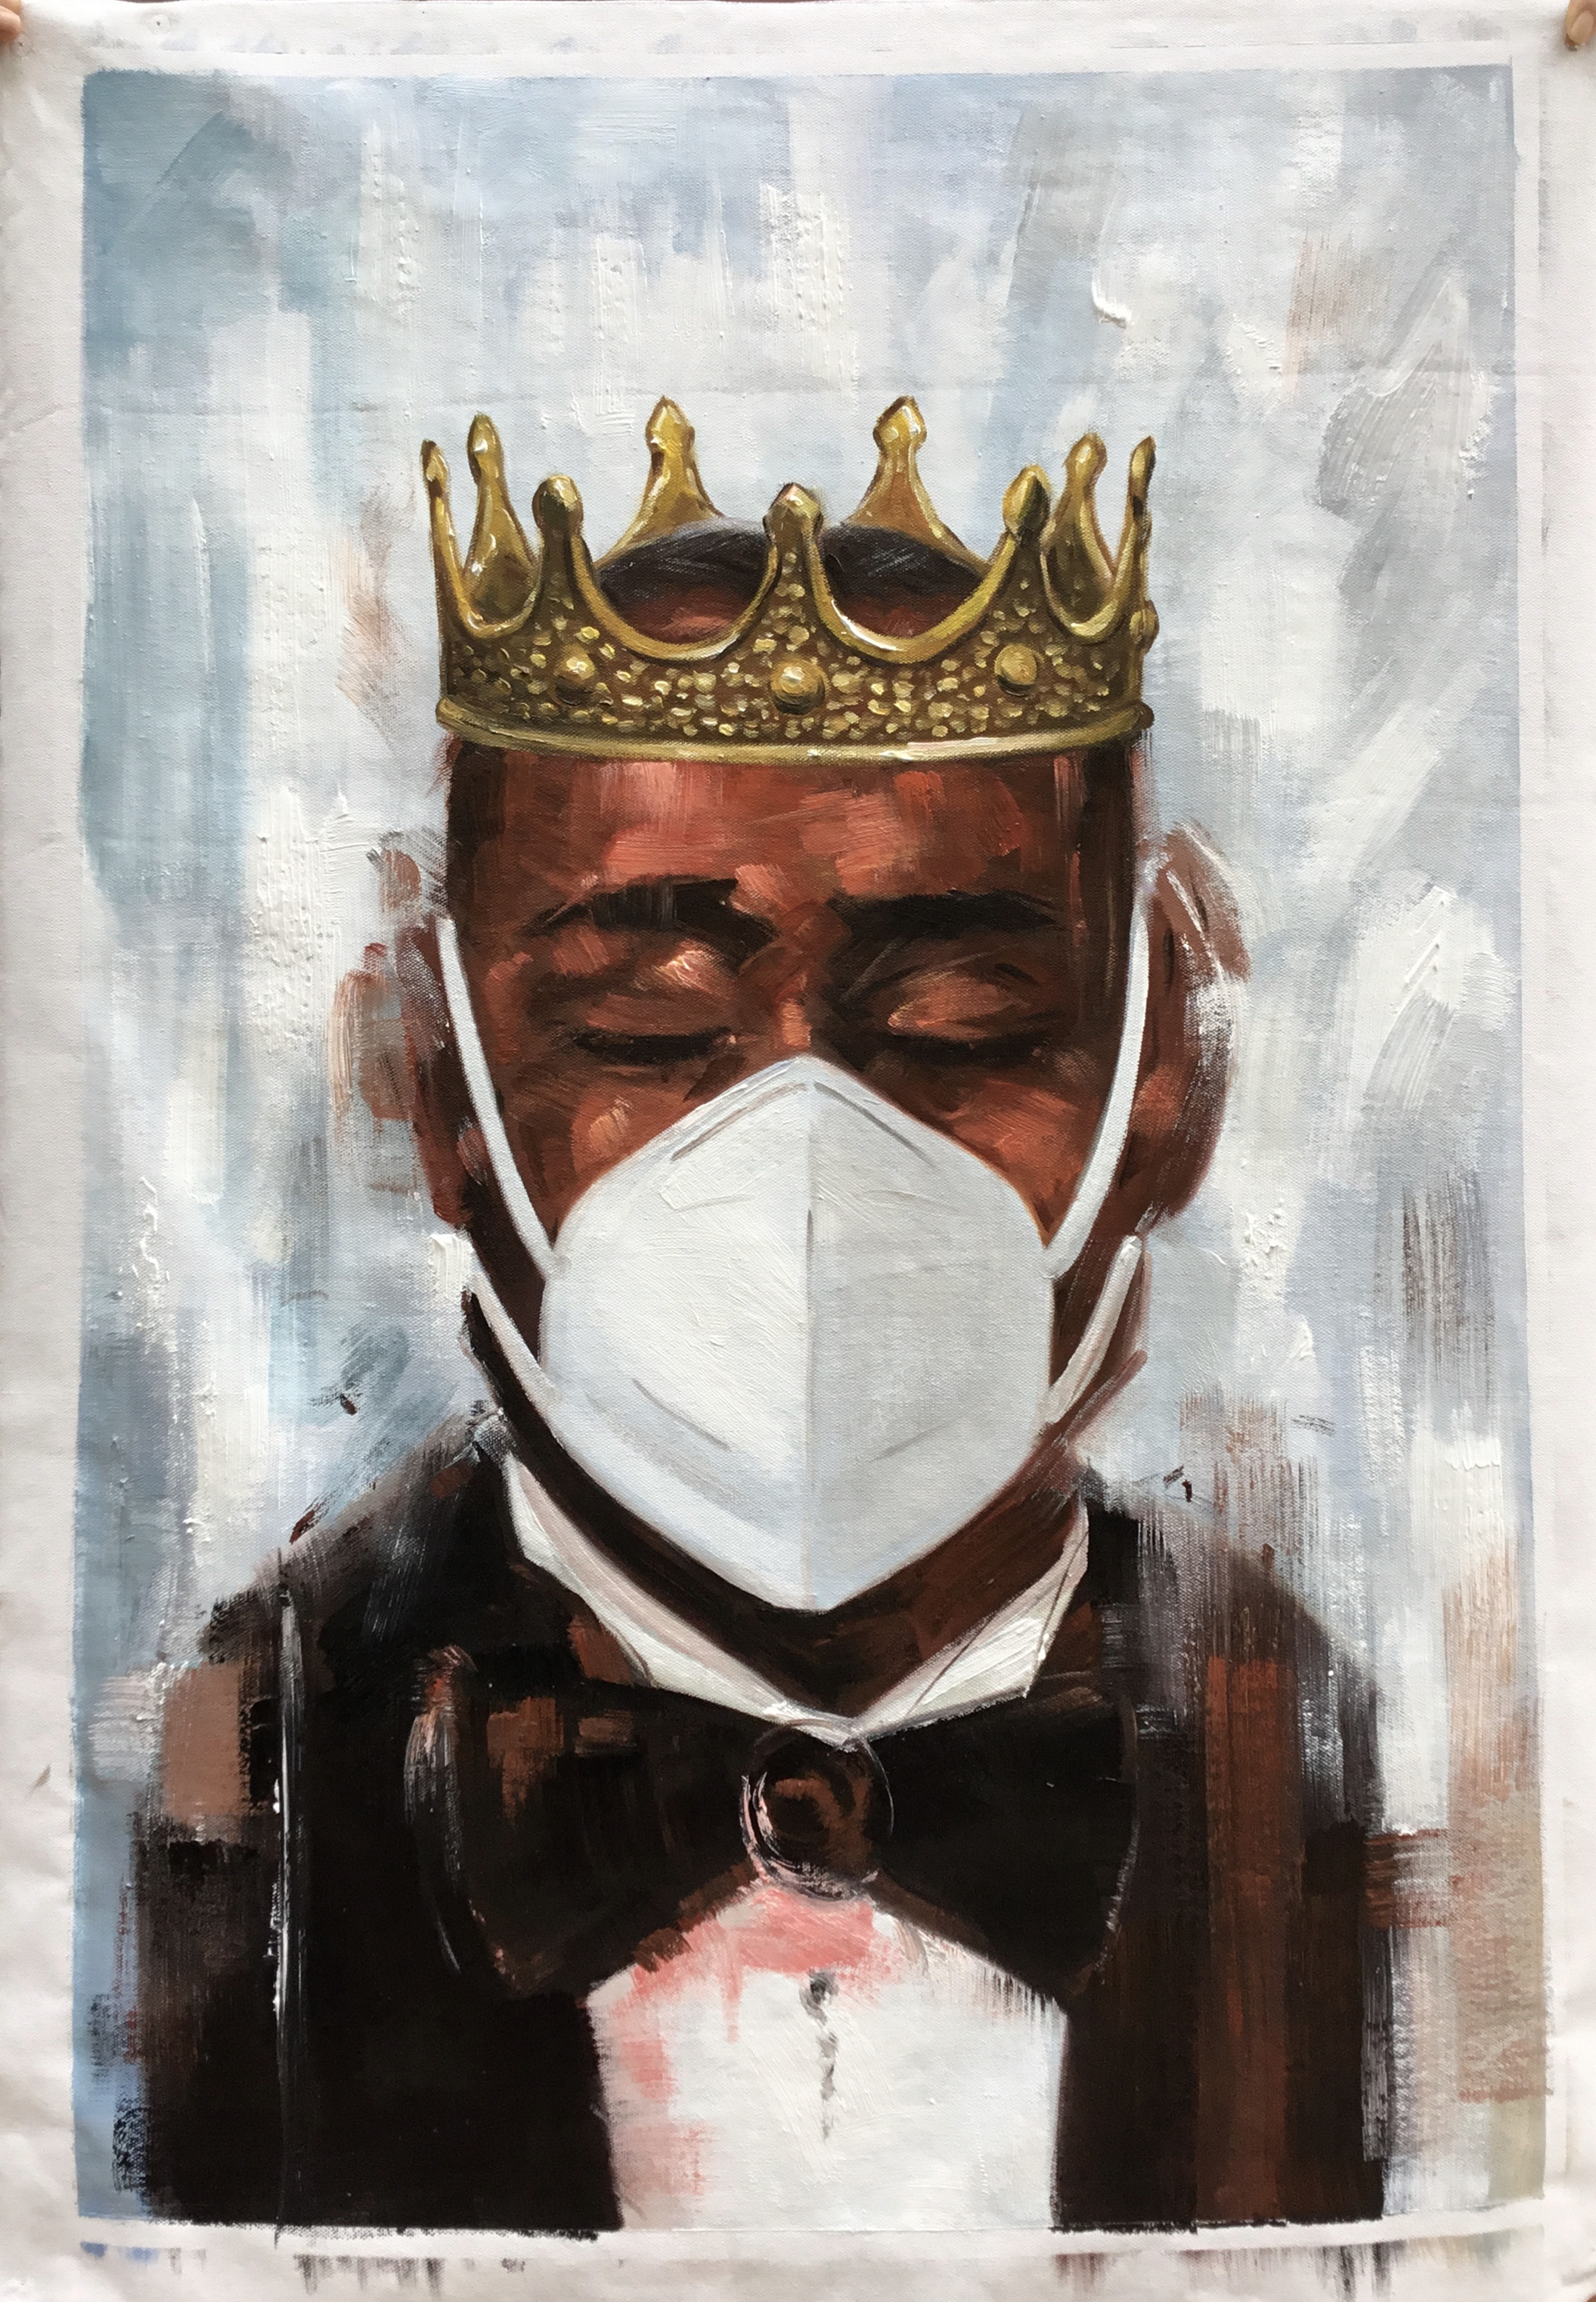 1231_Man in mask and crown_24x36inch  Acrylic painting